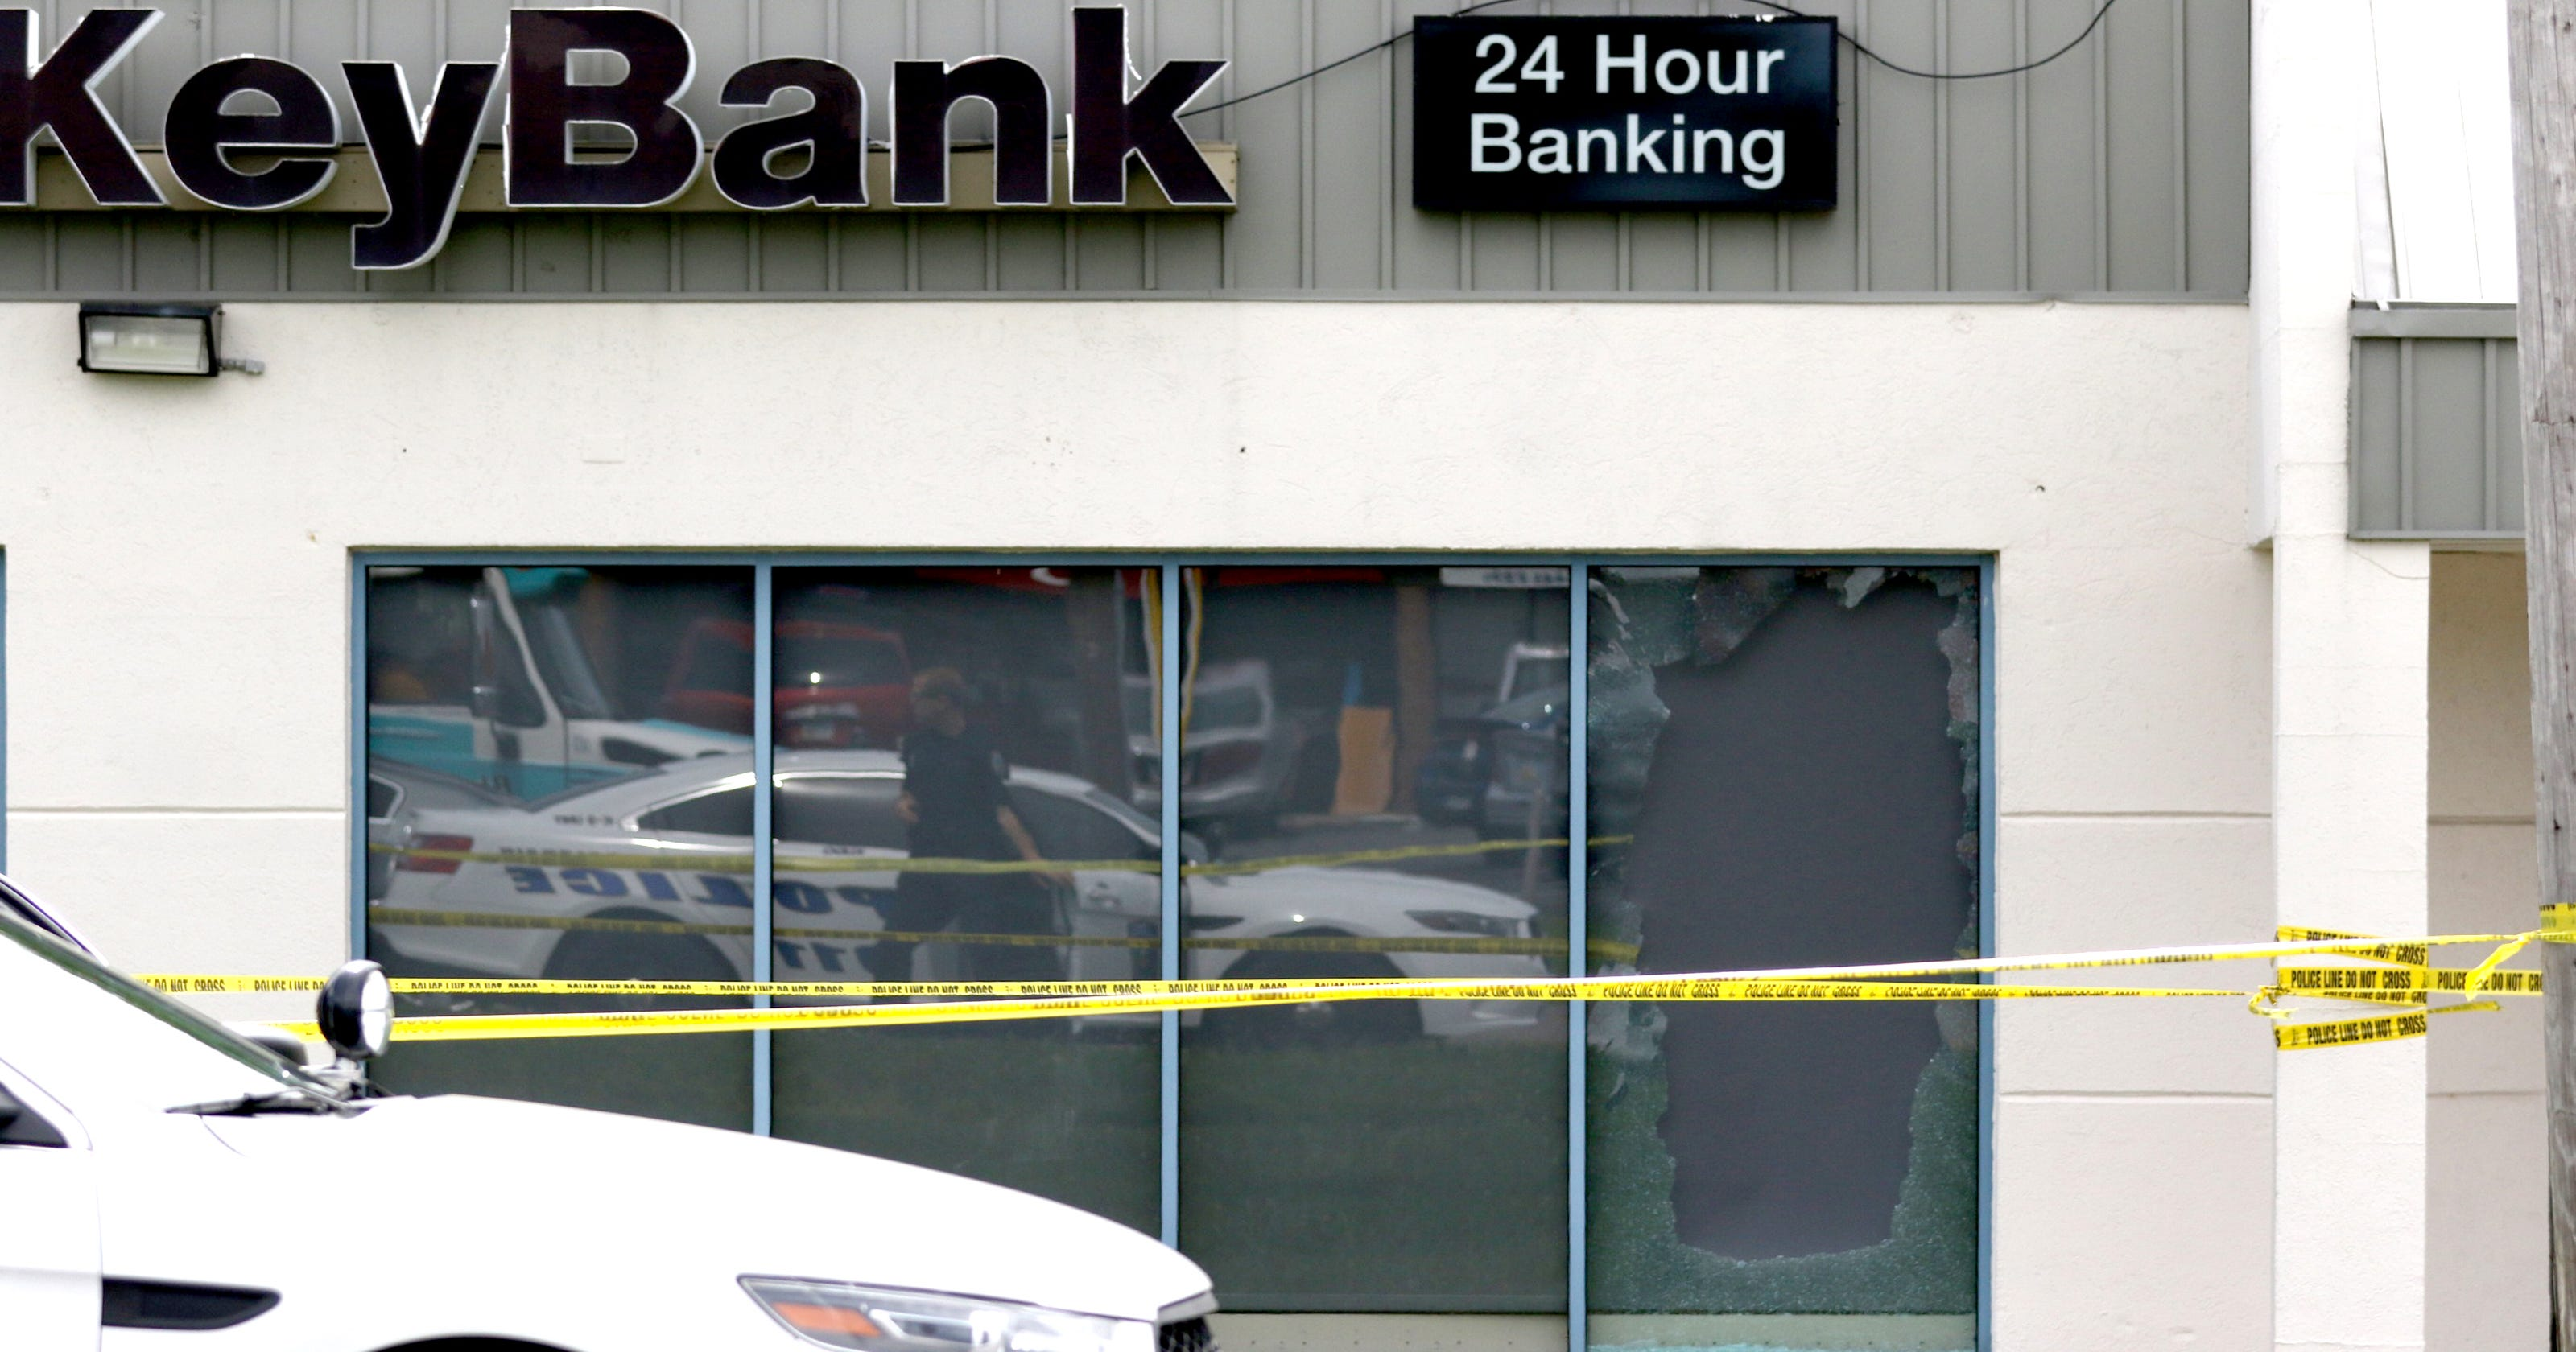 Cop not welcome at Colerain Key Bank after shootout with